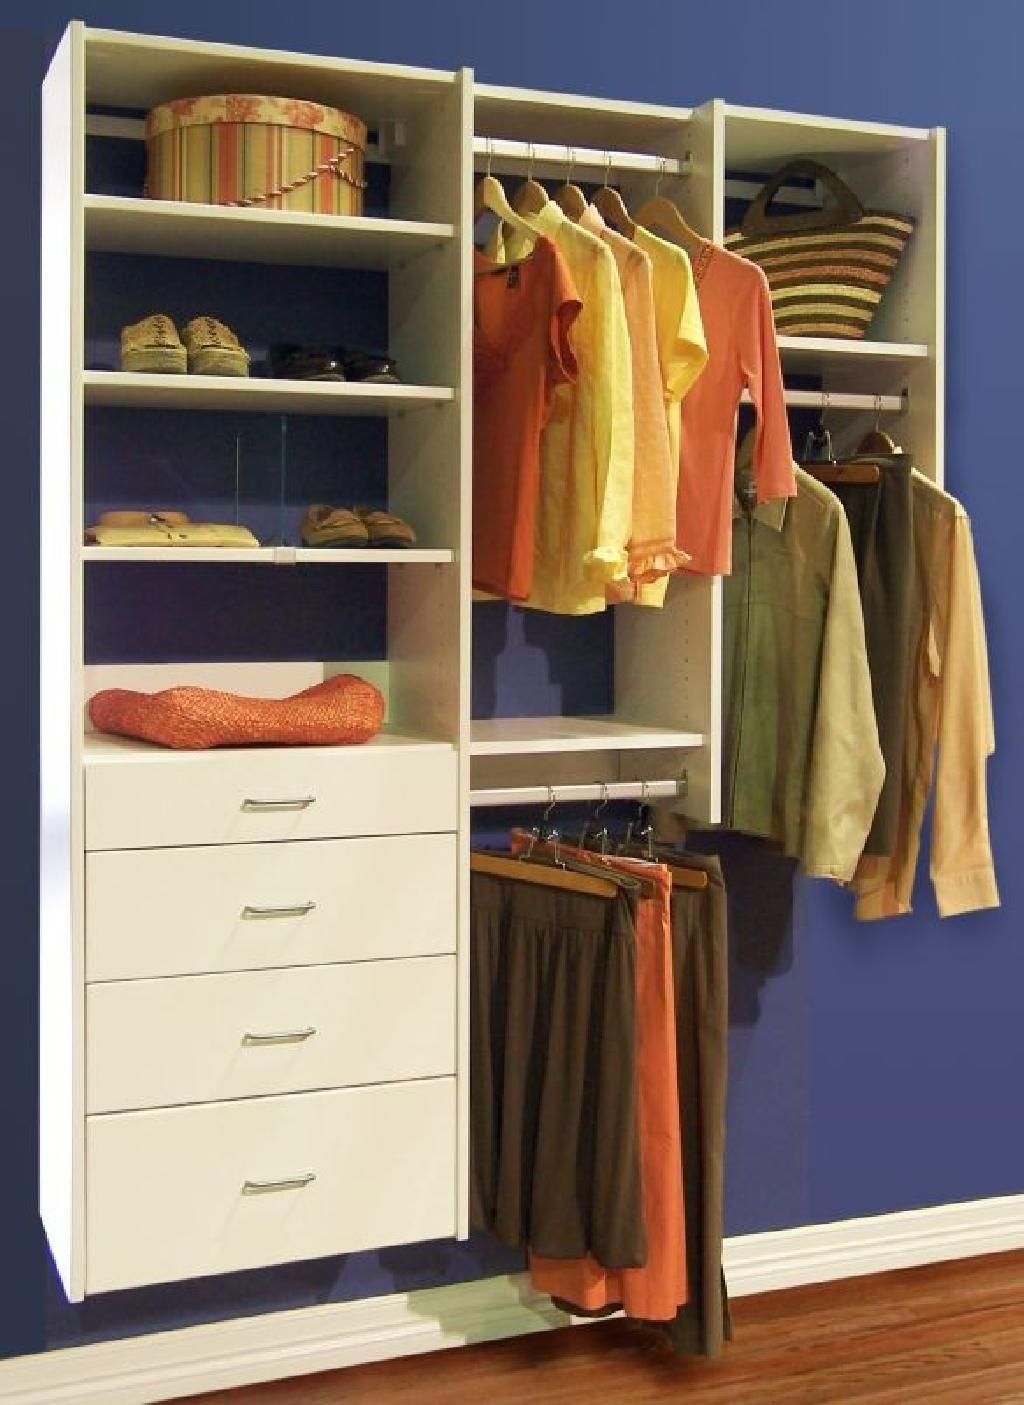 Closets to go simple reach in closet organizer custom for Online shelf design tool